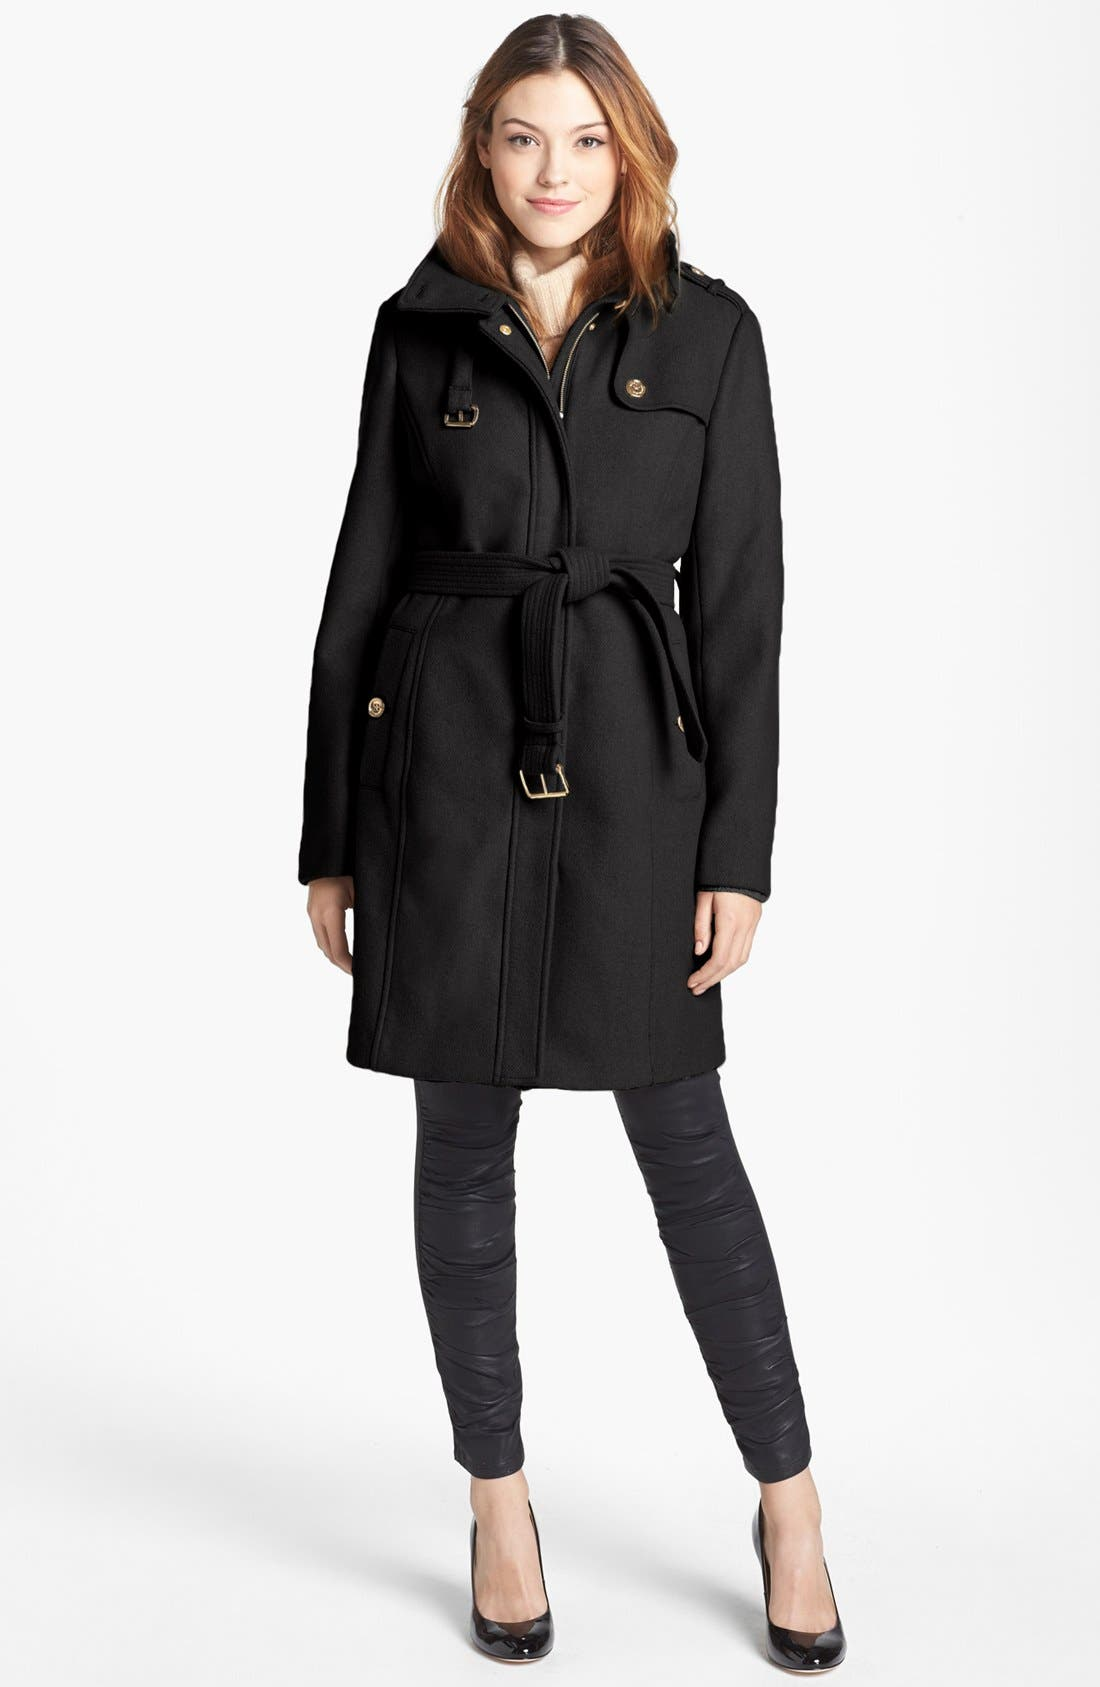 Alternate Image 1 Selected - MICHAEL Michael Kors Wool Blend Military Trench Coat (Petite) (Nordstrom Exclusive)